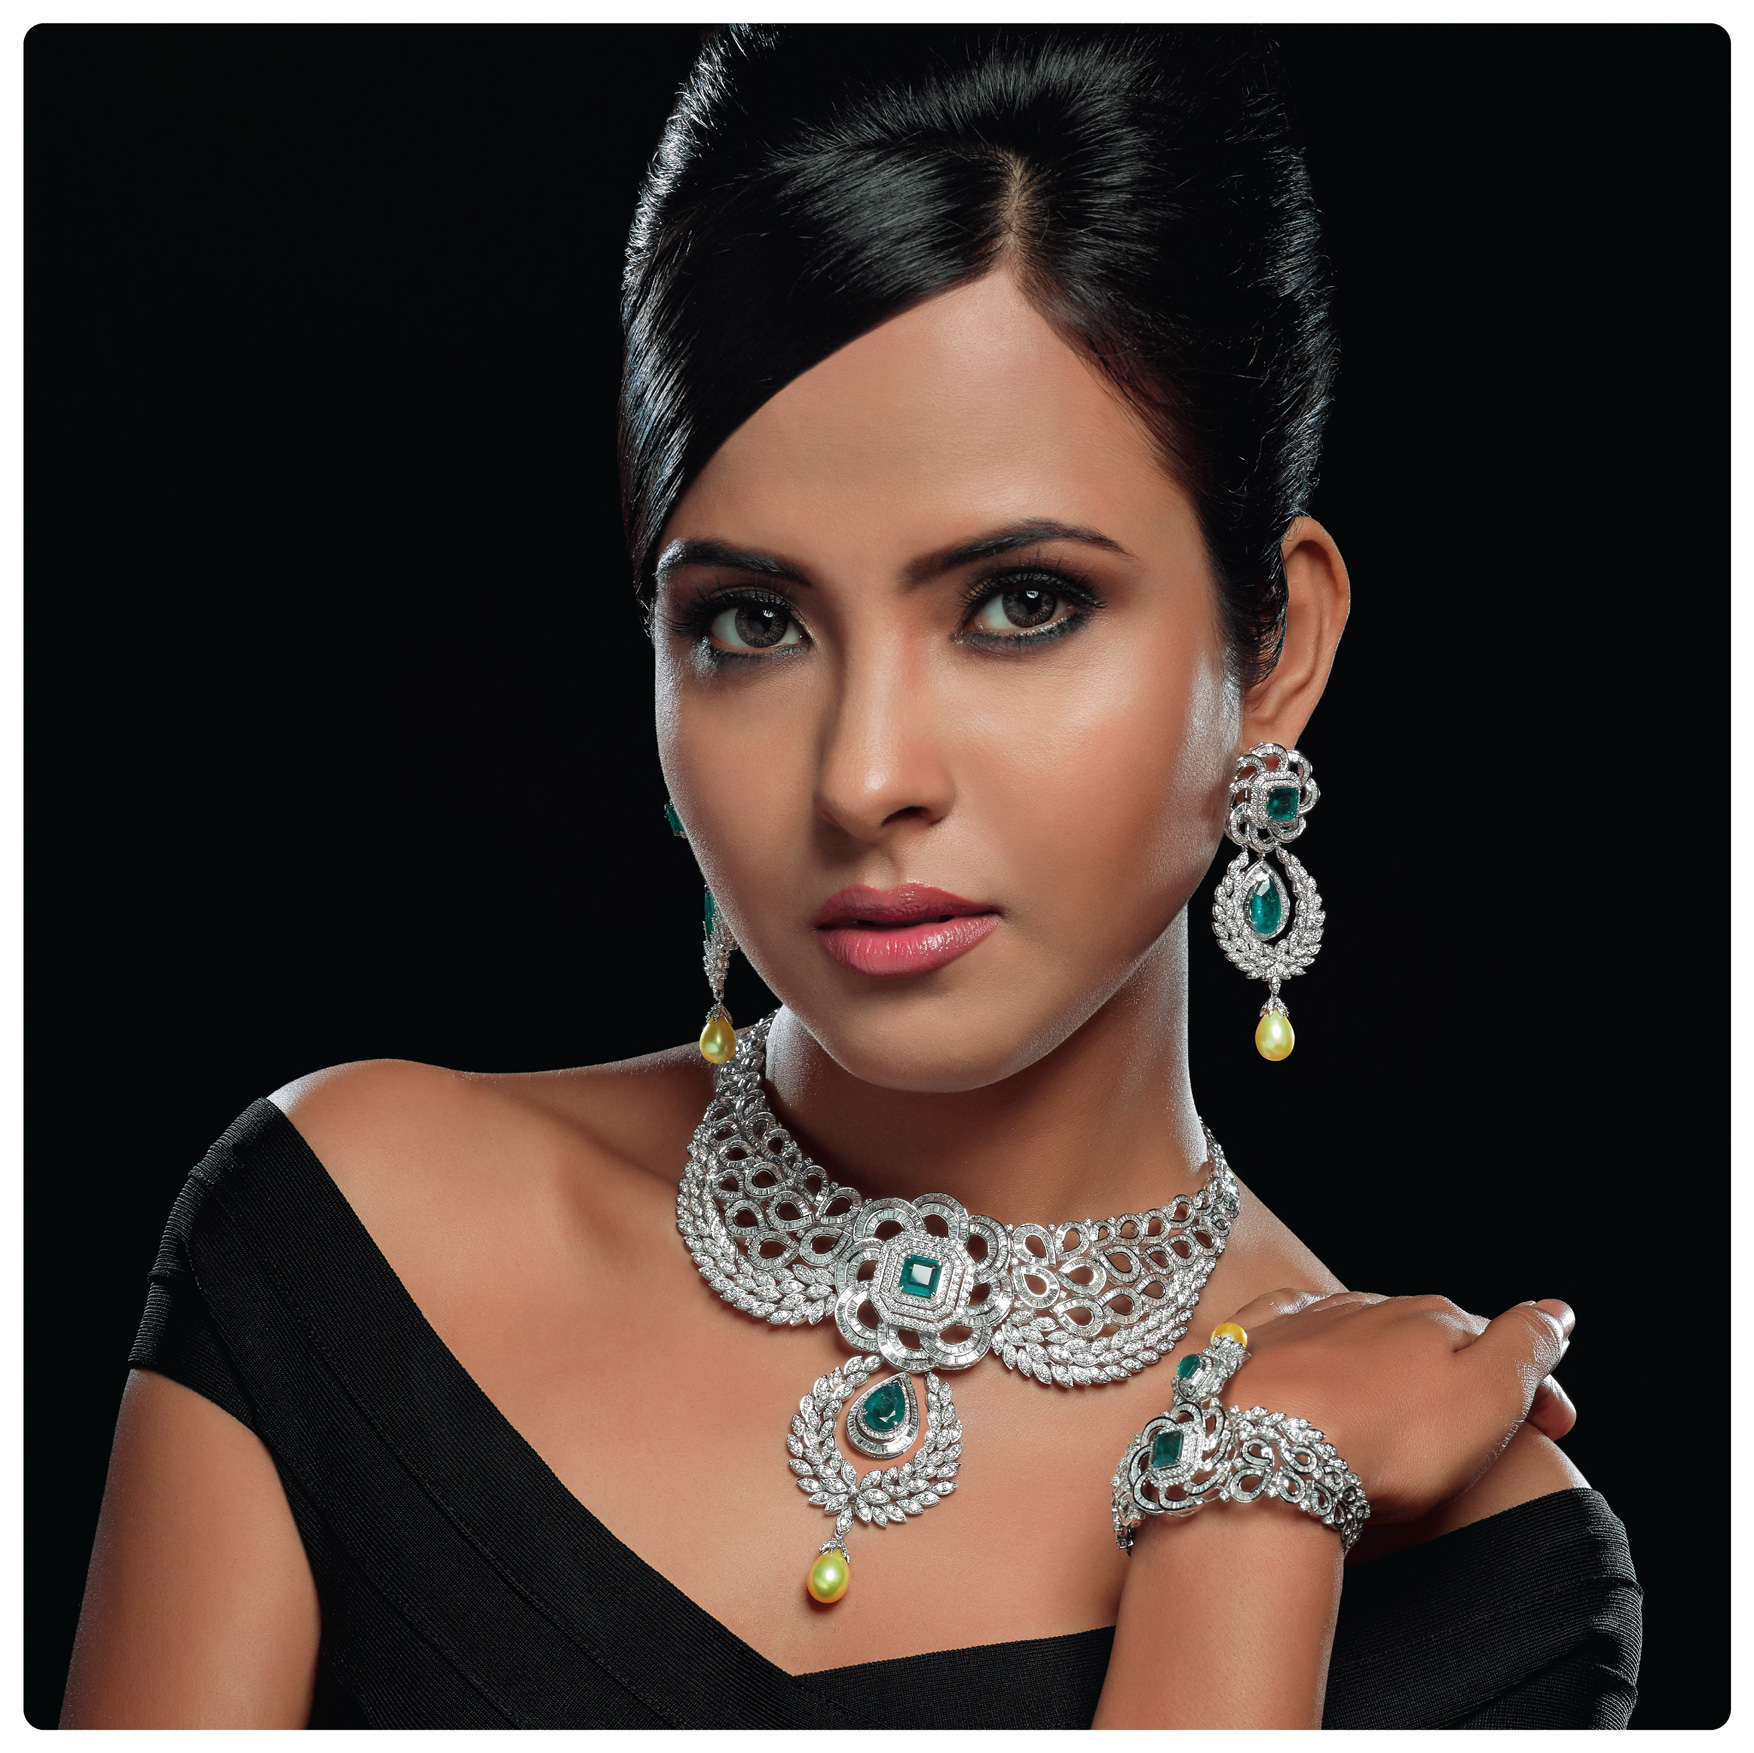 jasani, iba by jasani, jasani jewel, diamond jewellery, mumbai, diamond jewellery on model, jewellery photoshoot